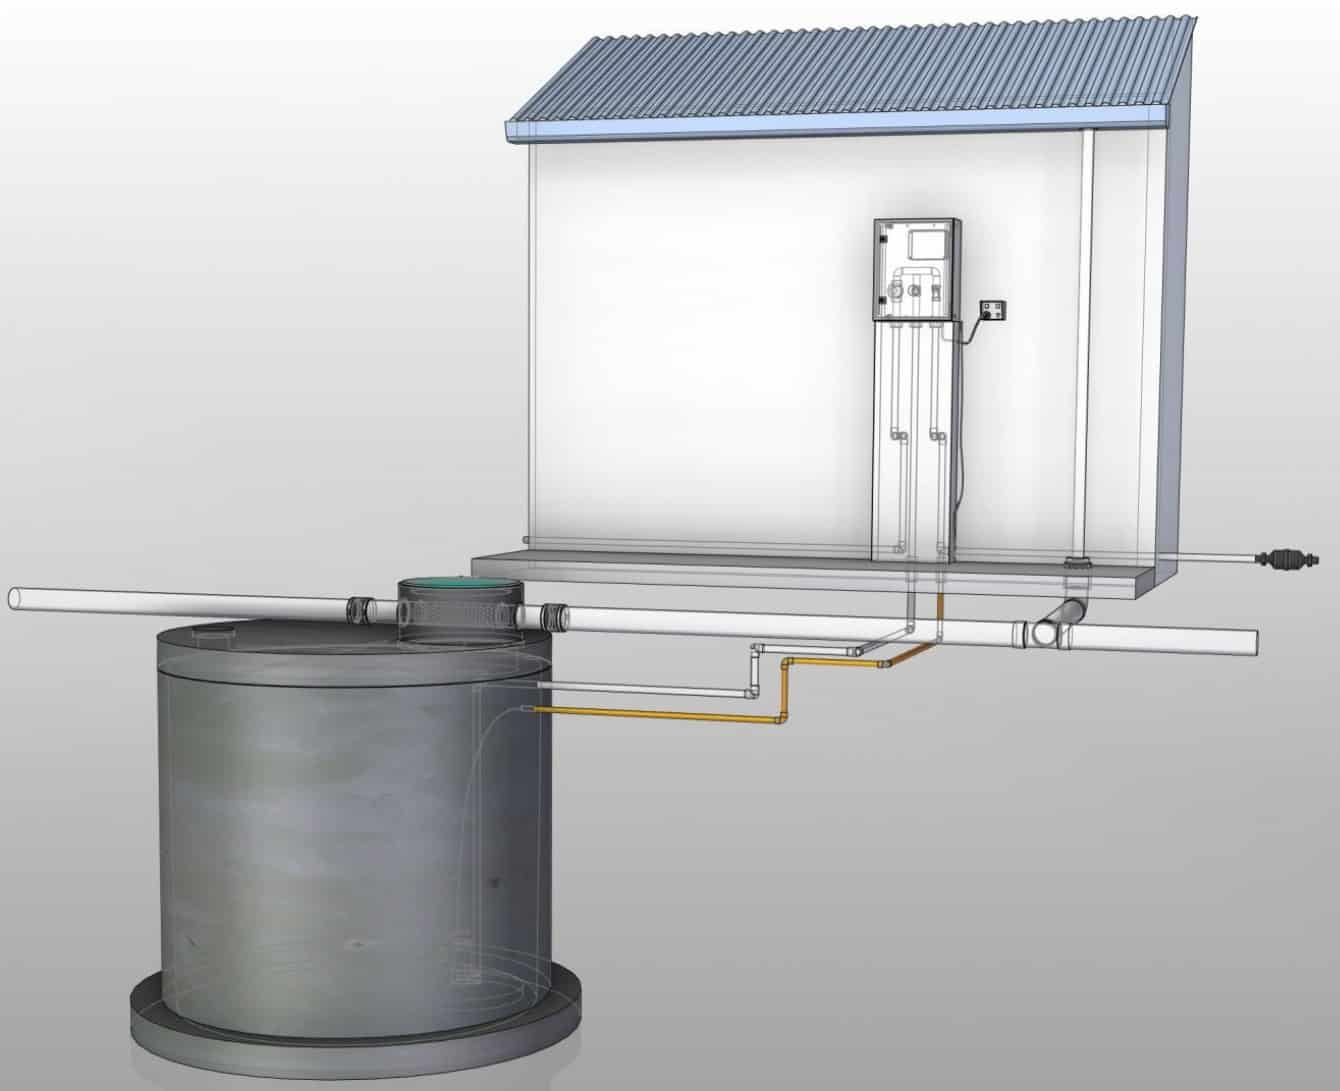 When Does Rainwater Harvesting Become Useful And Necessary?